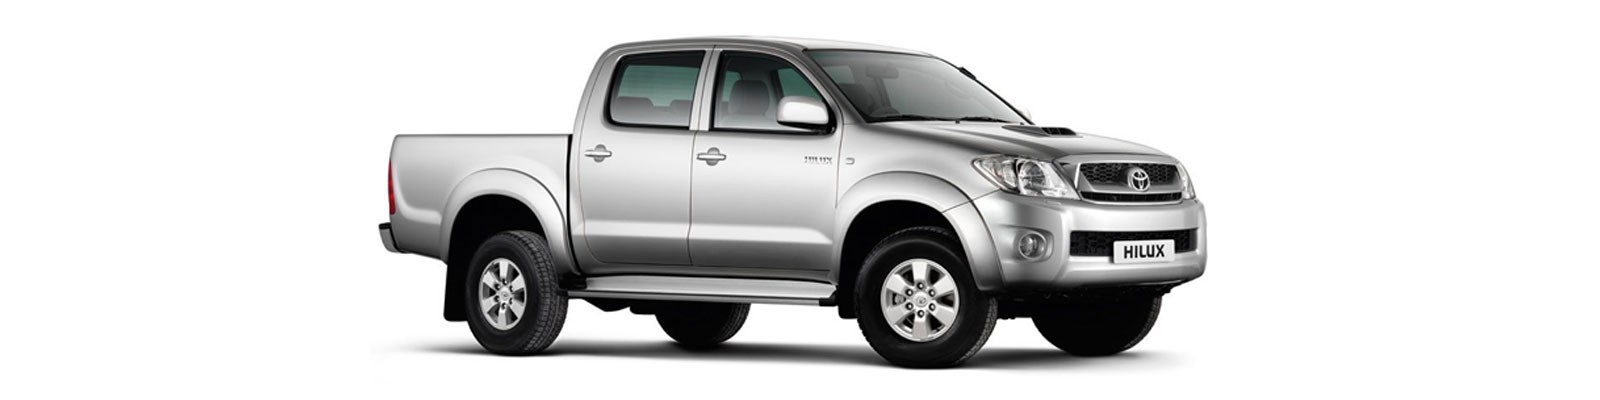 Accessories For Toyota Hilux Vigo Mk6 Double Cab 2009 To 2012